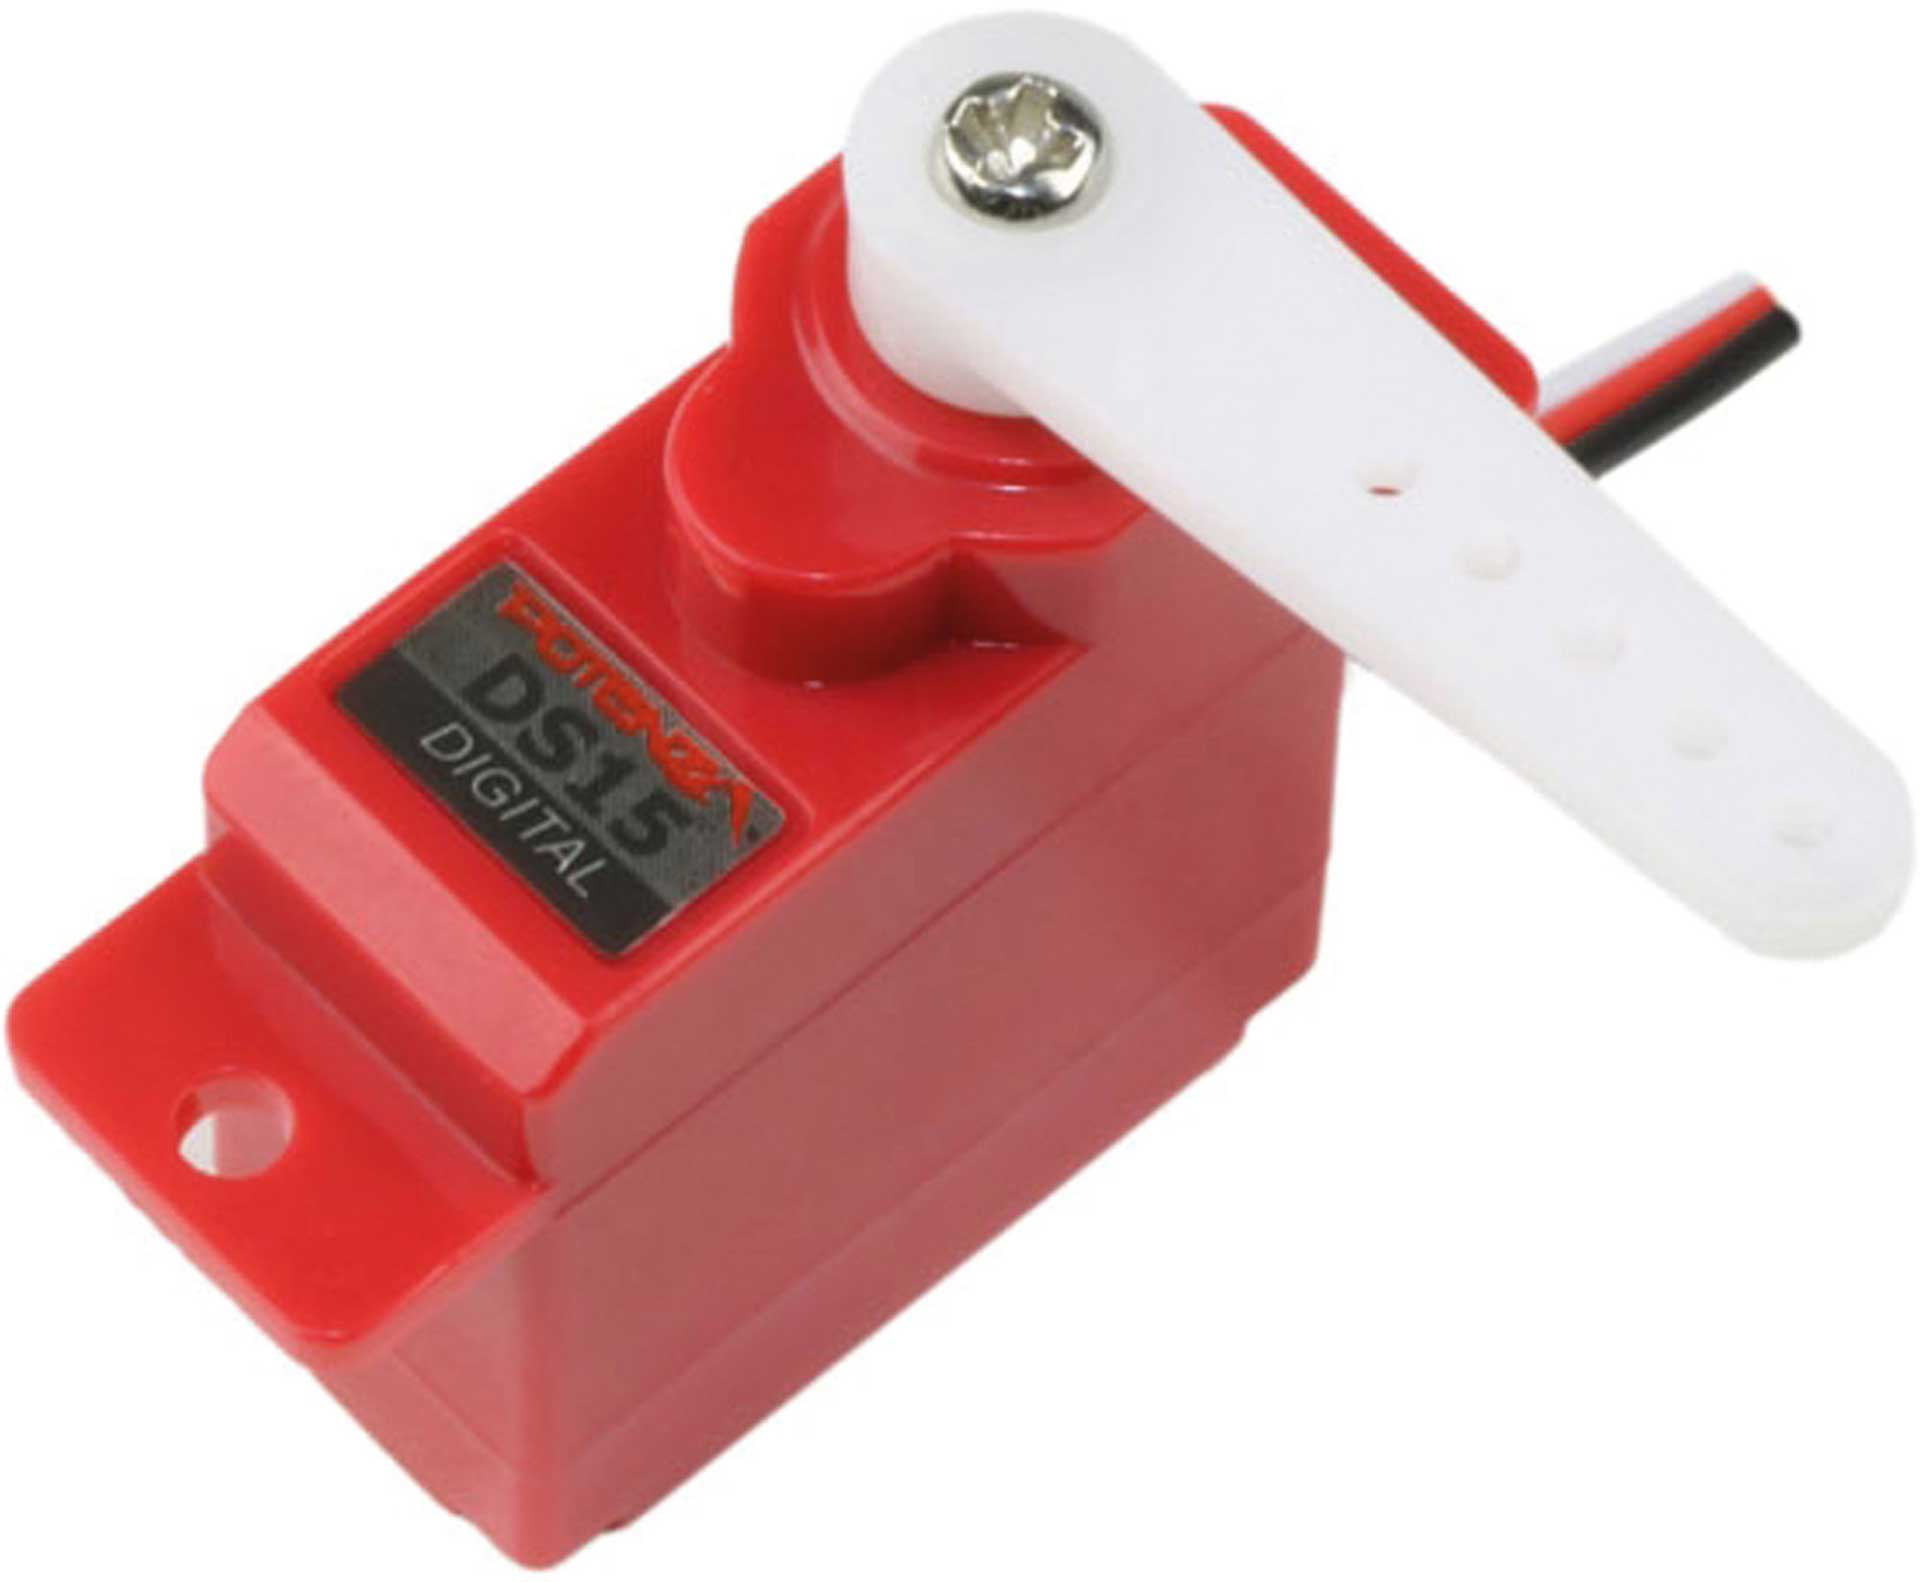 POTENZA DS15 MG DIGITAL SUB-MICRO SERVO WITH 280MM CABLE